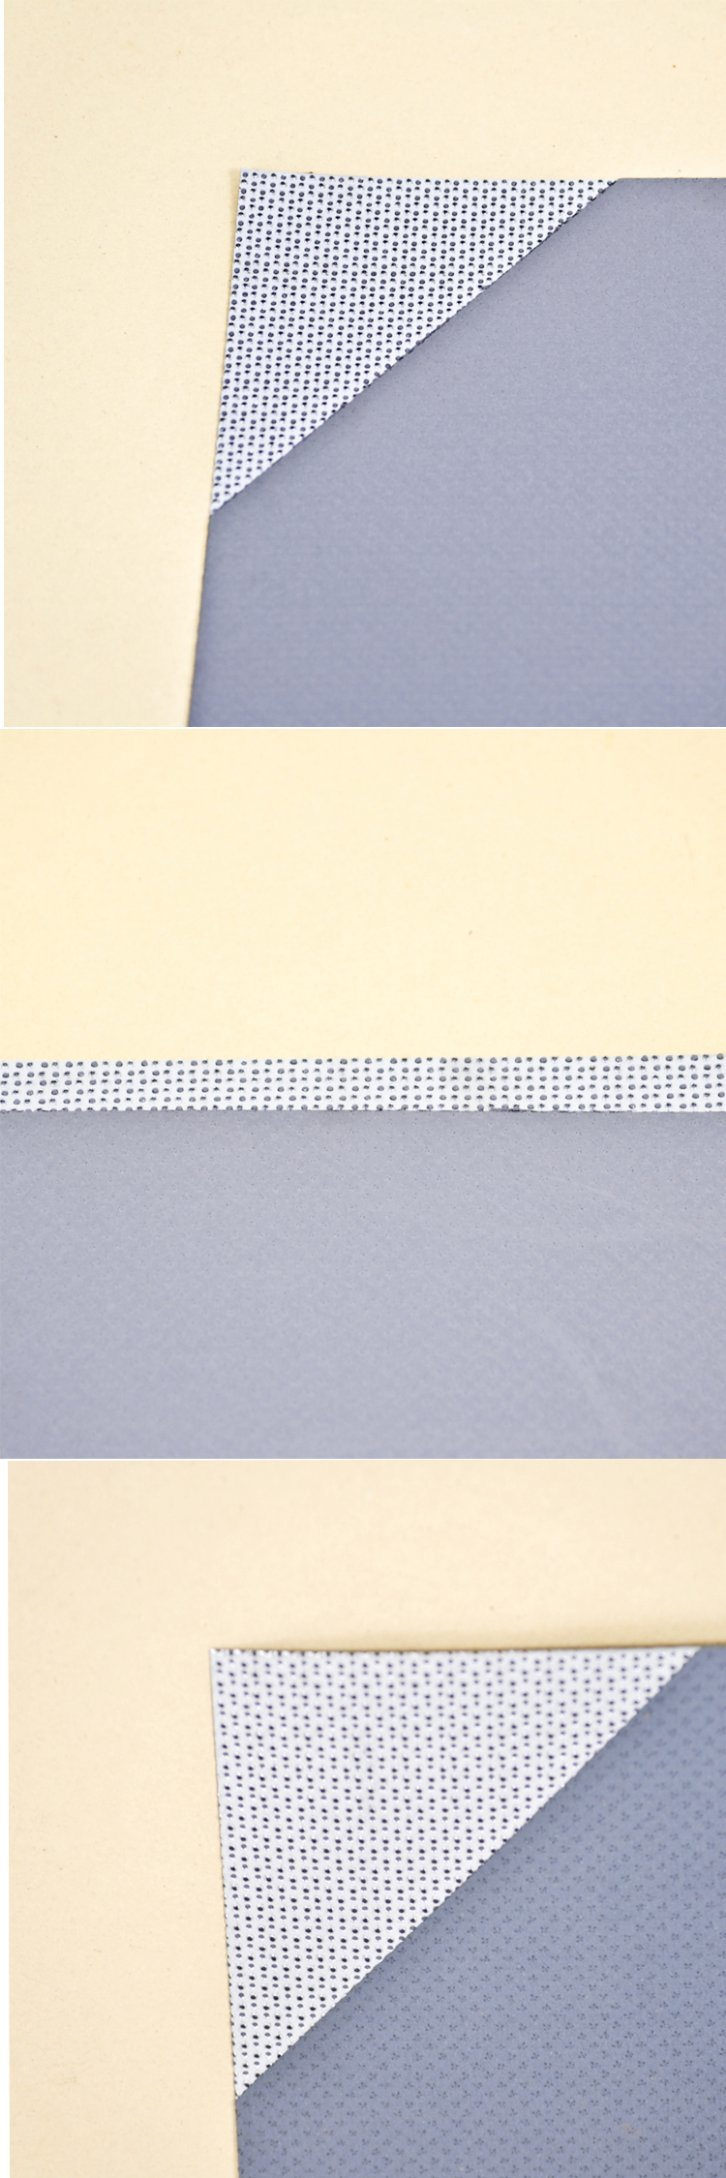 Reinforced Non Asbestos Gasket Sheet with Metal